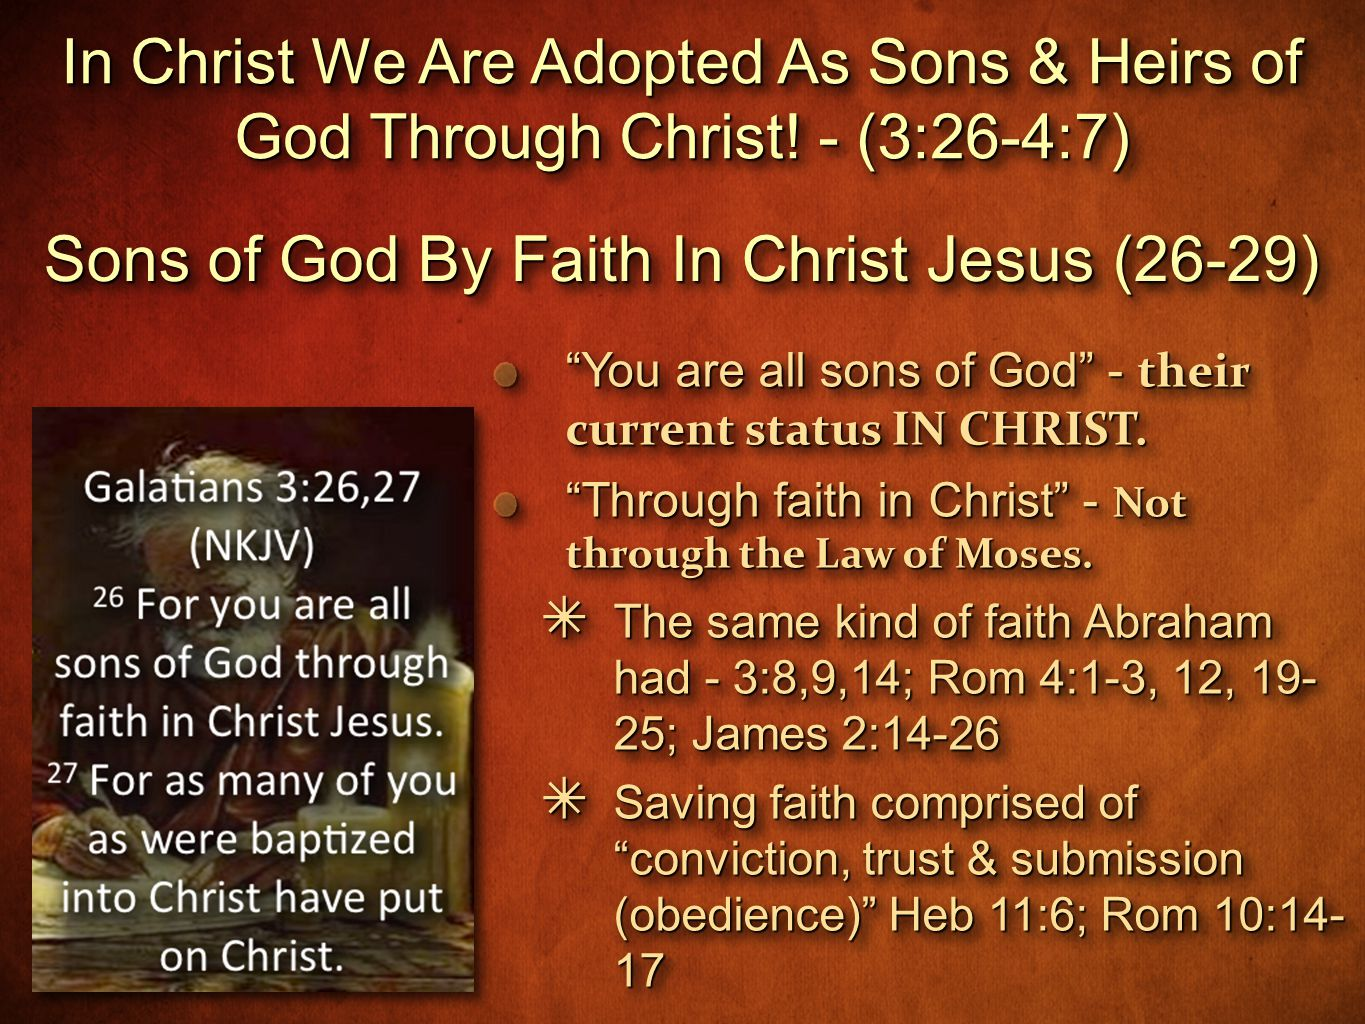 You are all sons of God - their current status IN CHRIST.